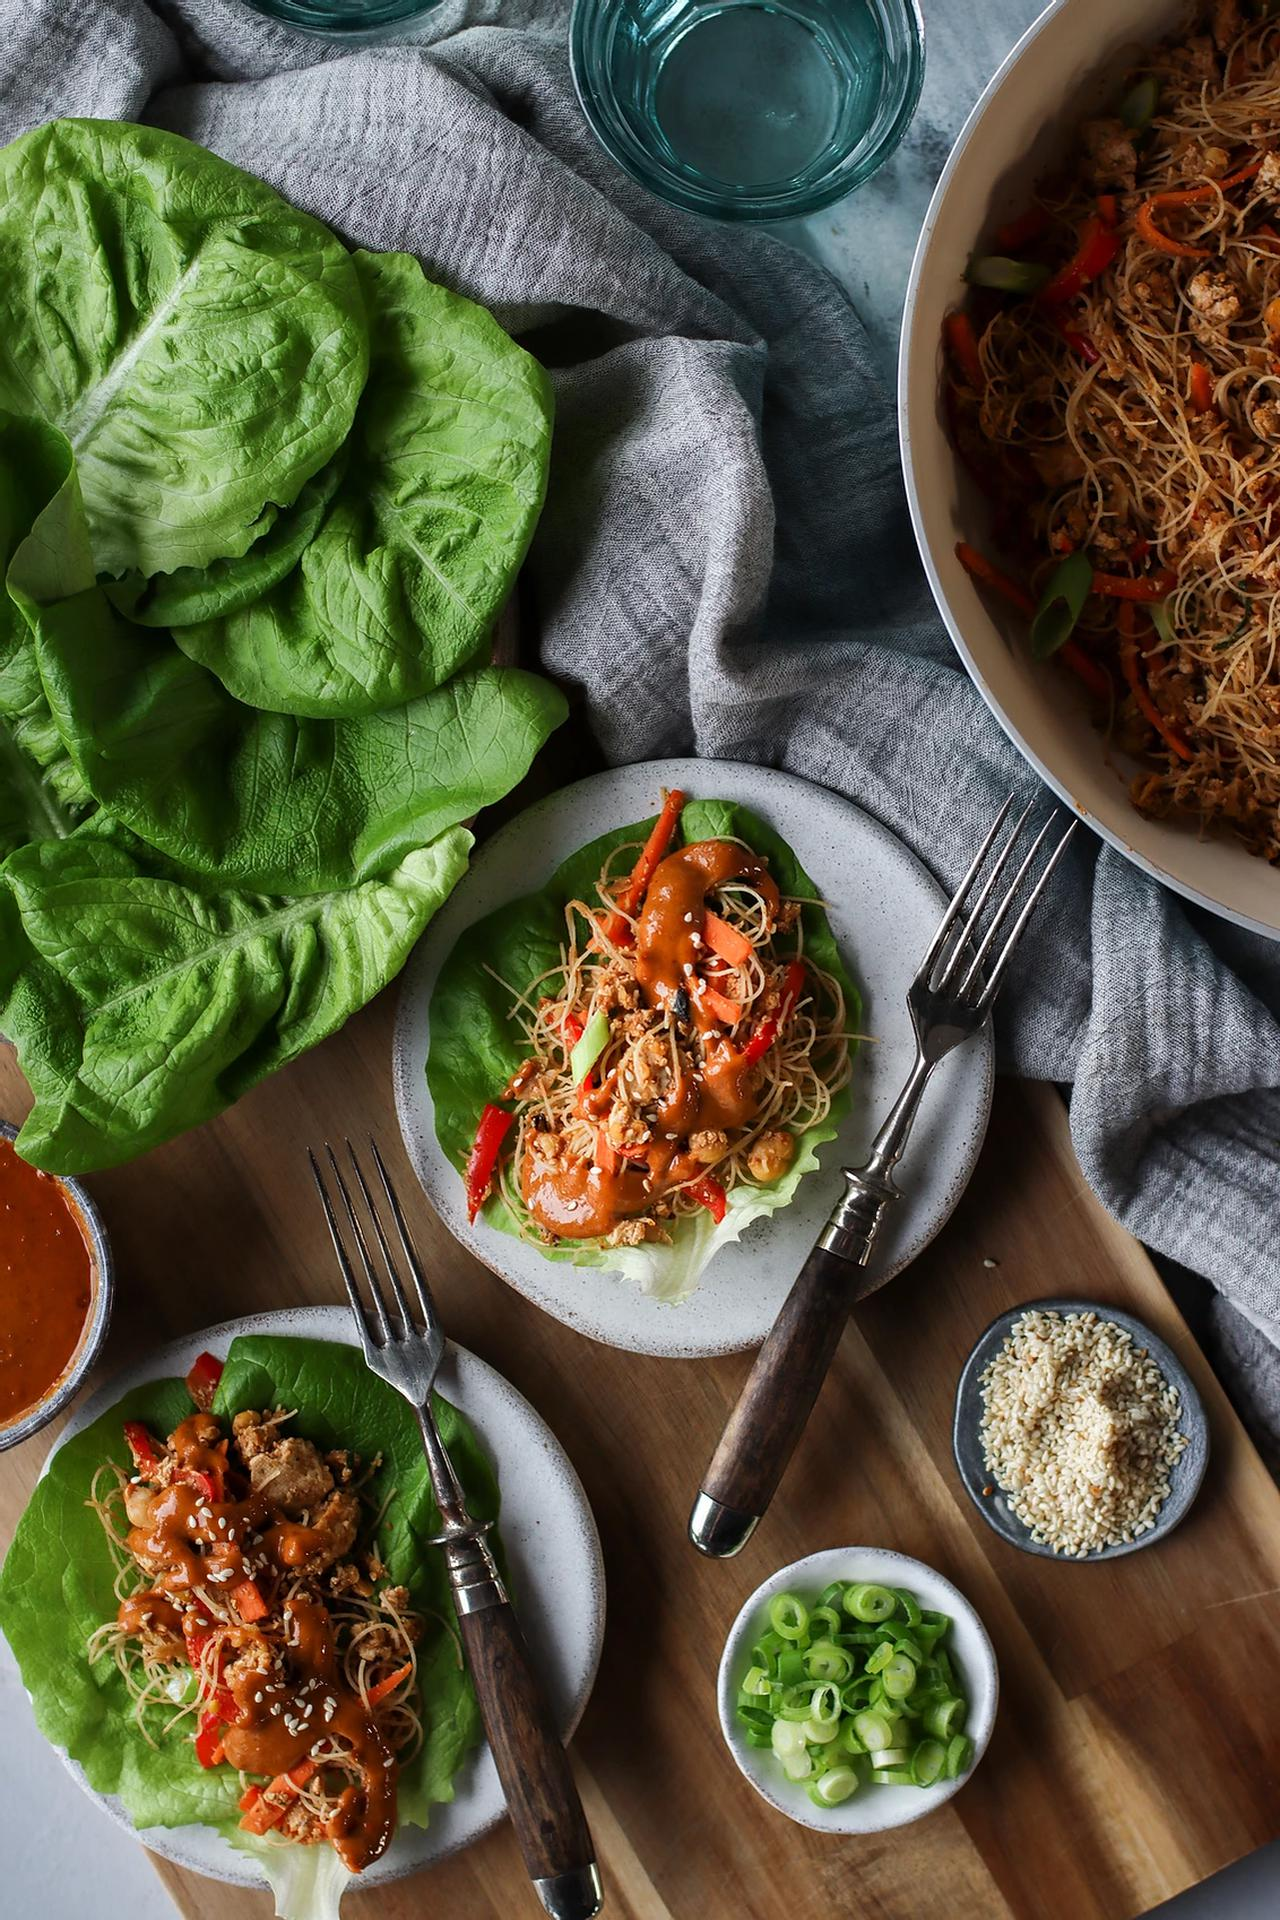 Main image of High Protein Lettuce Wraps with a Creamy Peanut Sauce